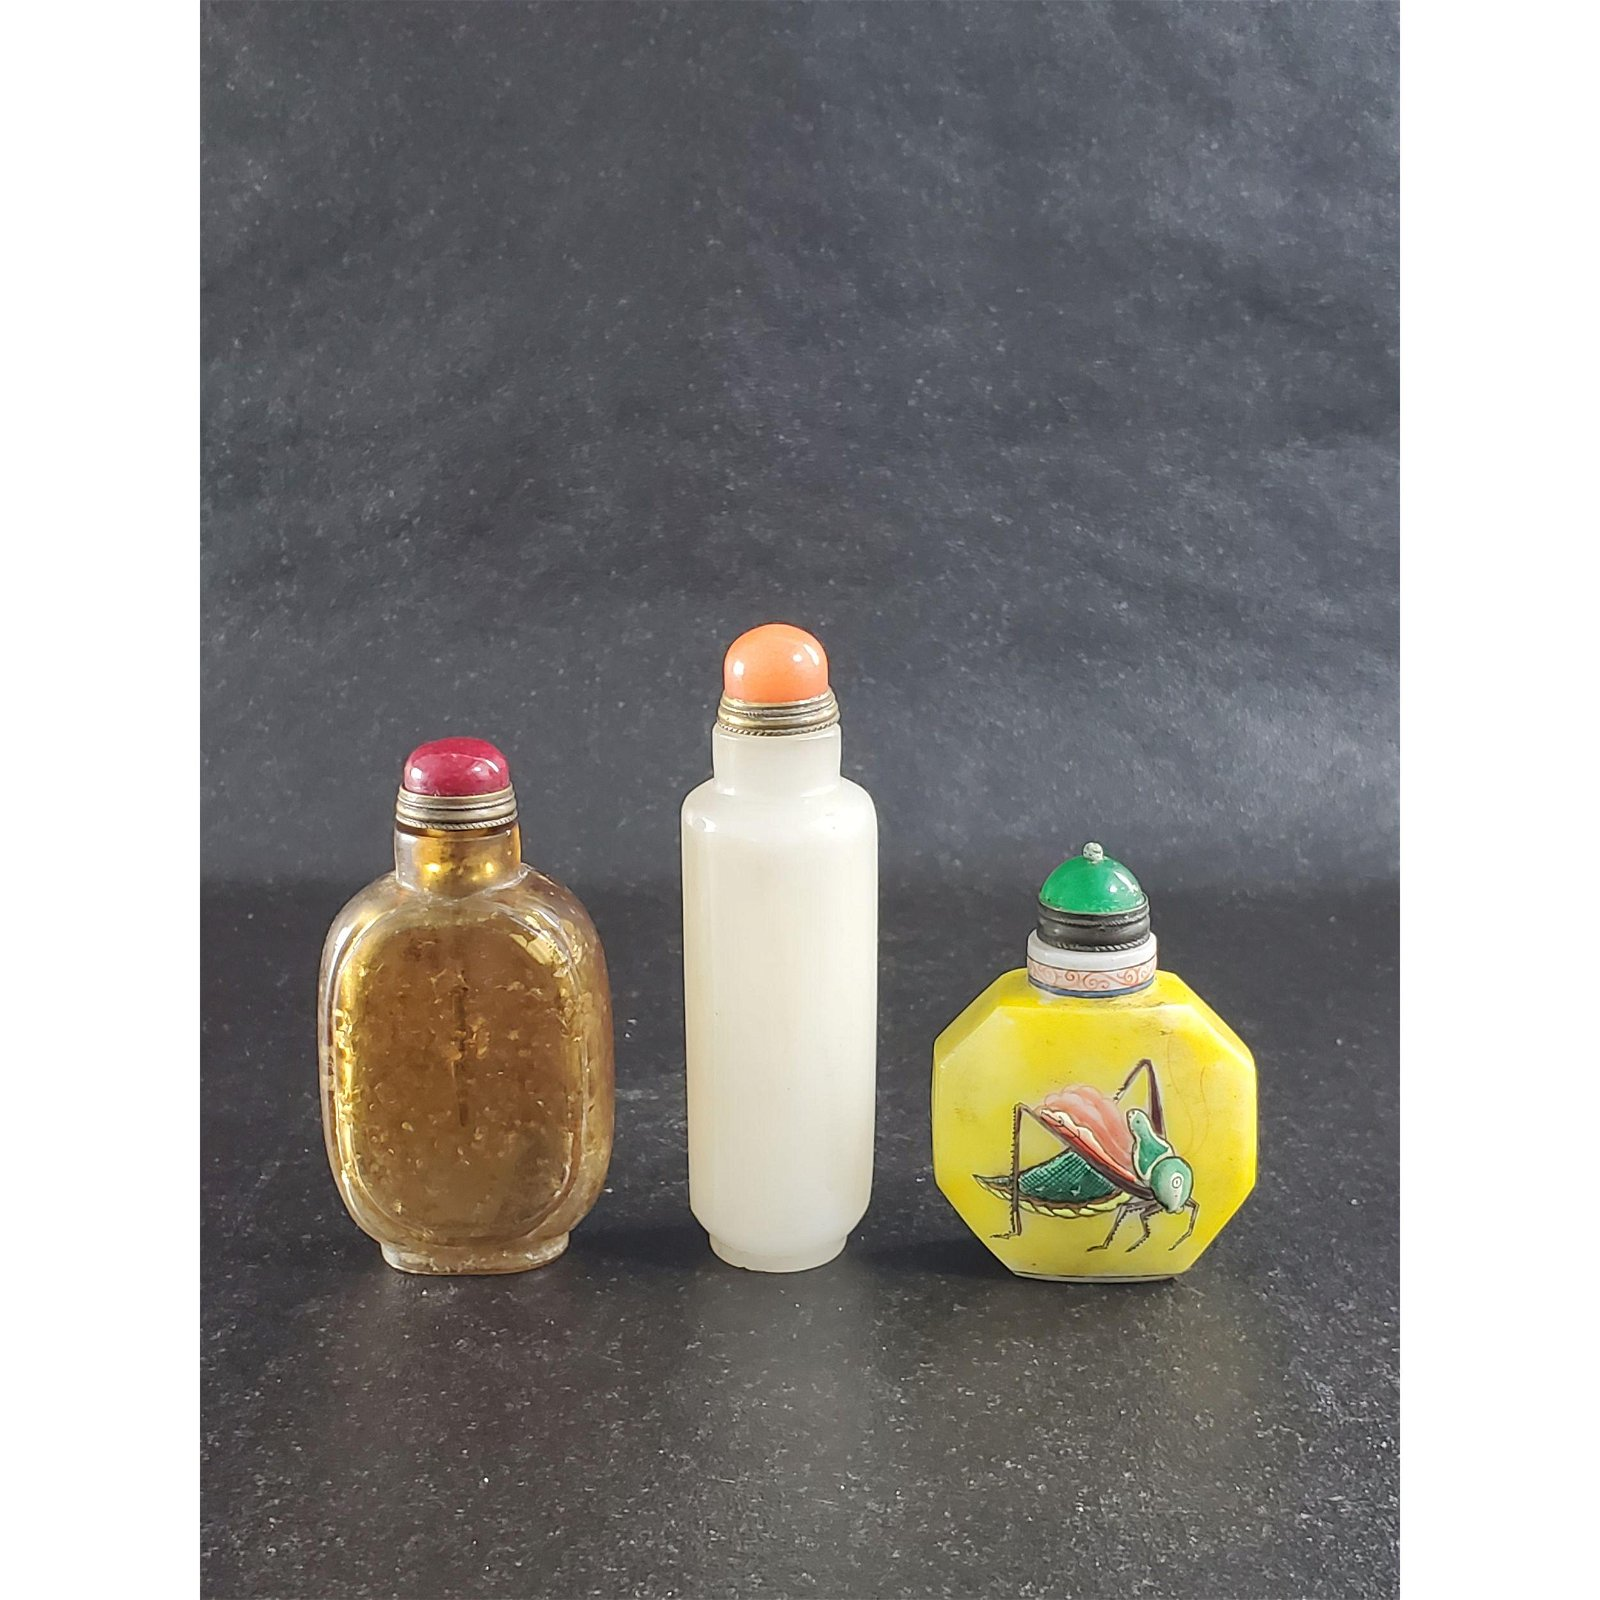 Lot of 3 Chinese Snuff Bottles